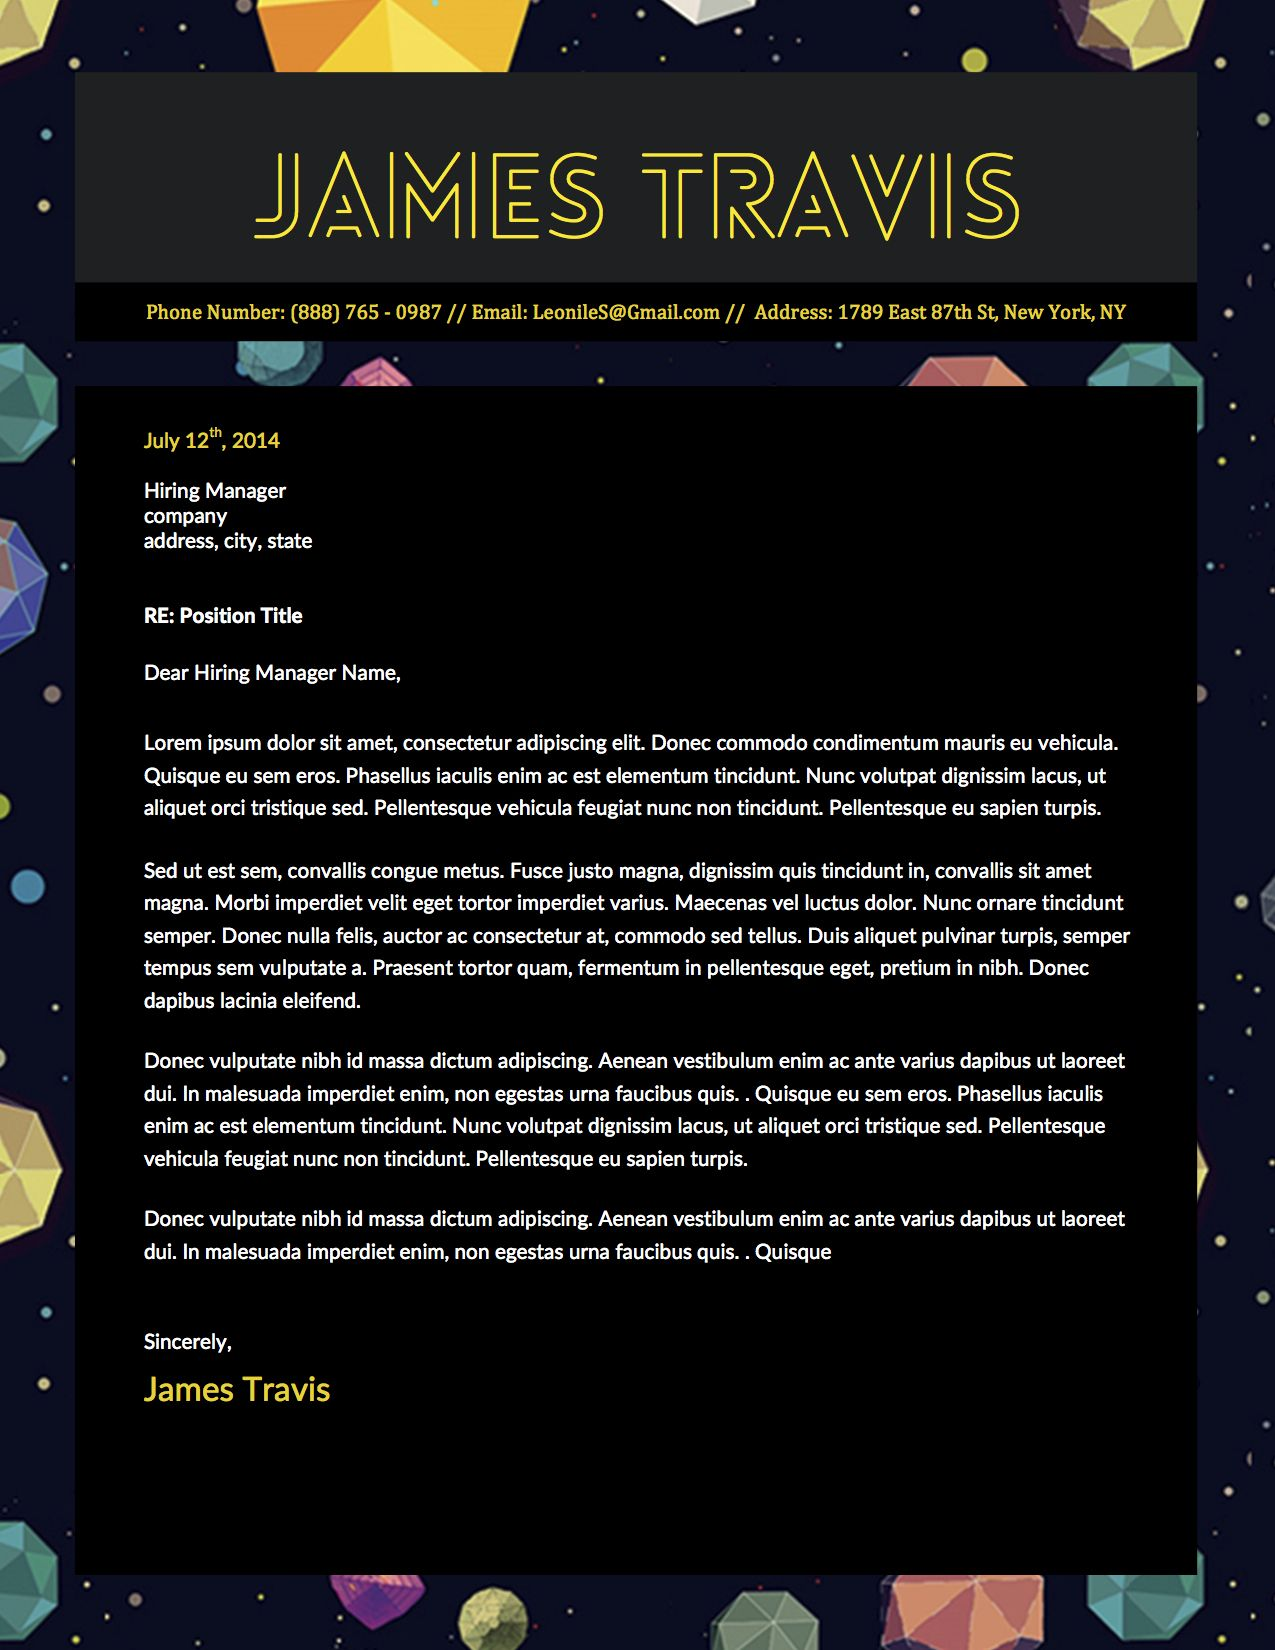 James travis creative gamer cover letter template for microsoft james travis creative gamer cover letter template for microsoft word madrichimfo Image collections